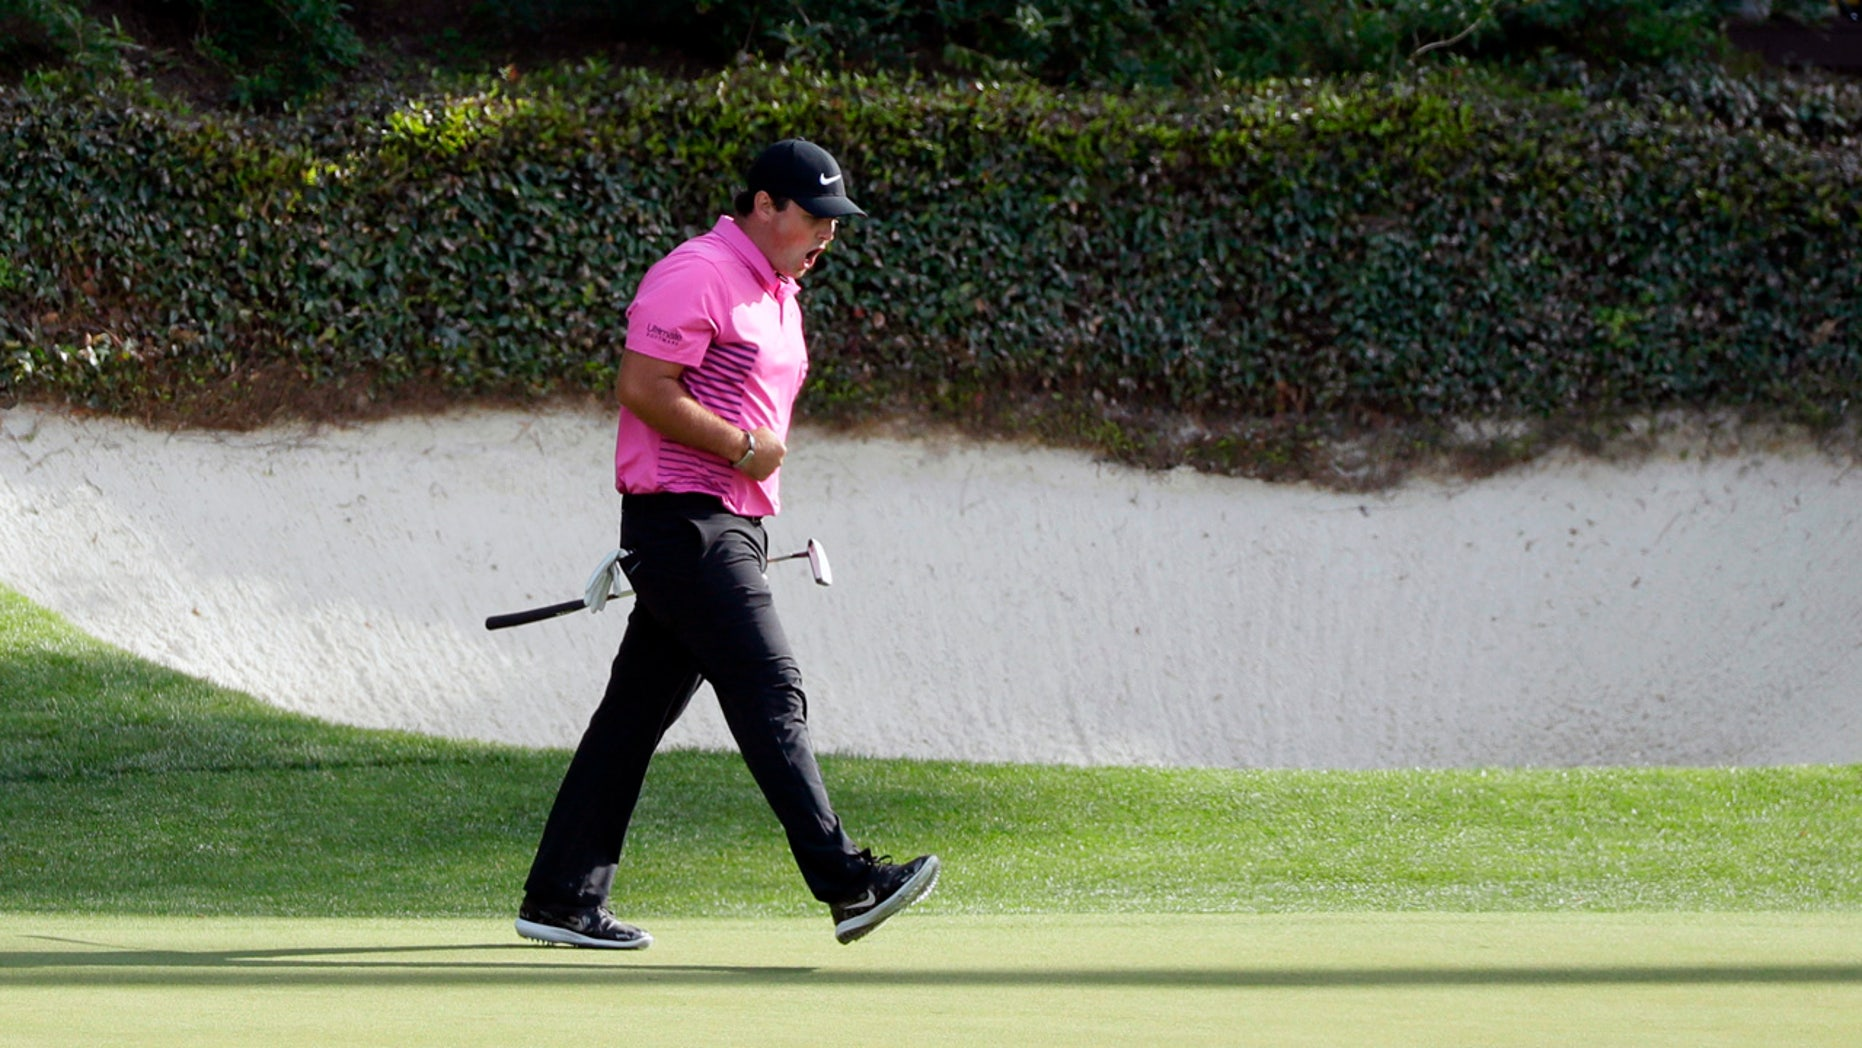 Patrick Reed reacts after making birdie at the 12th hole at the Masters Sunday.